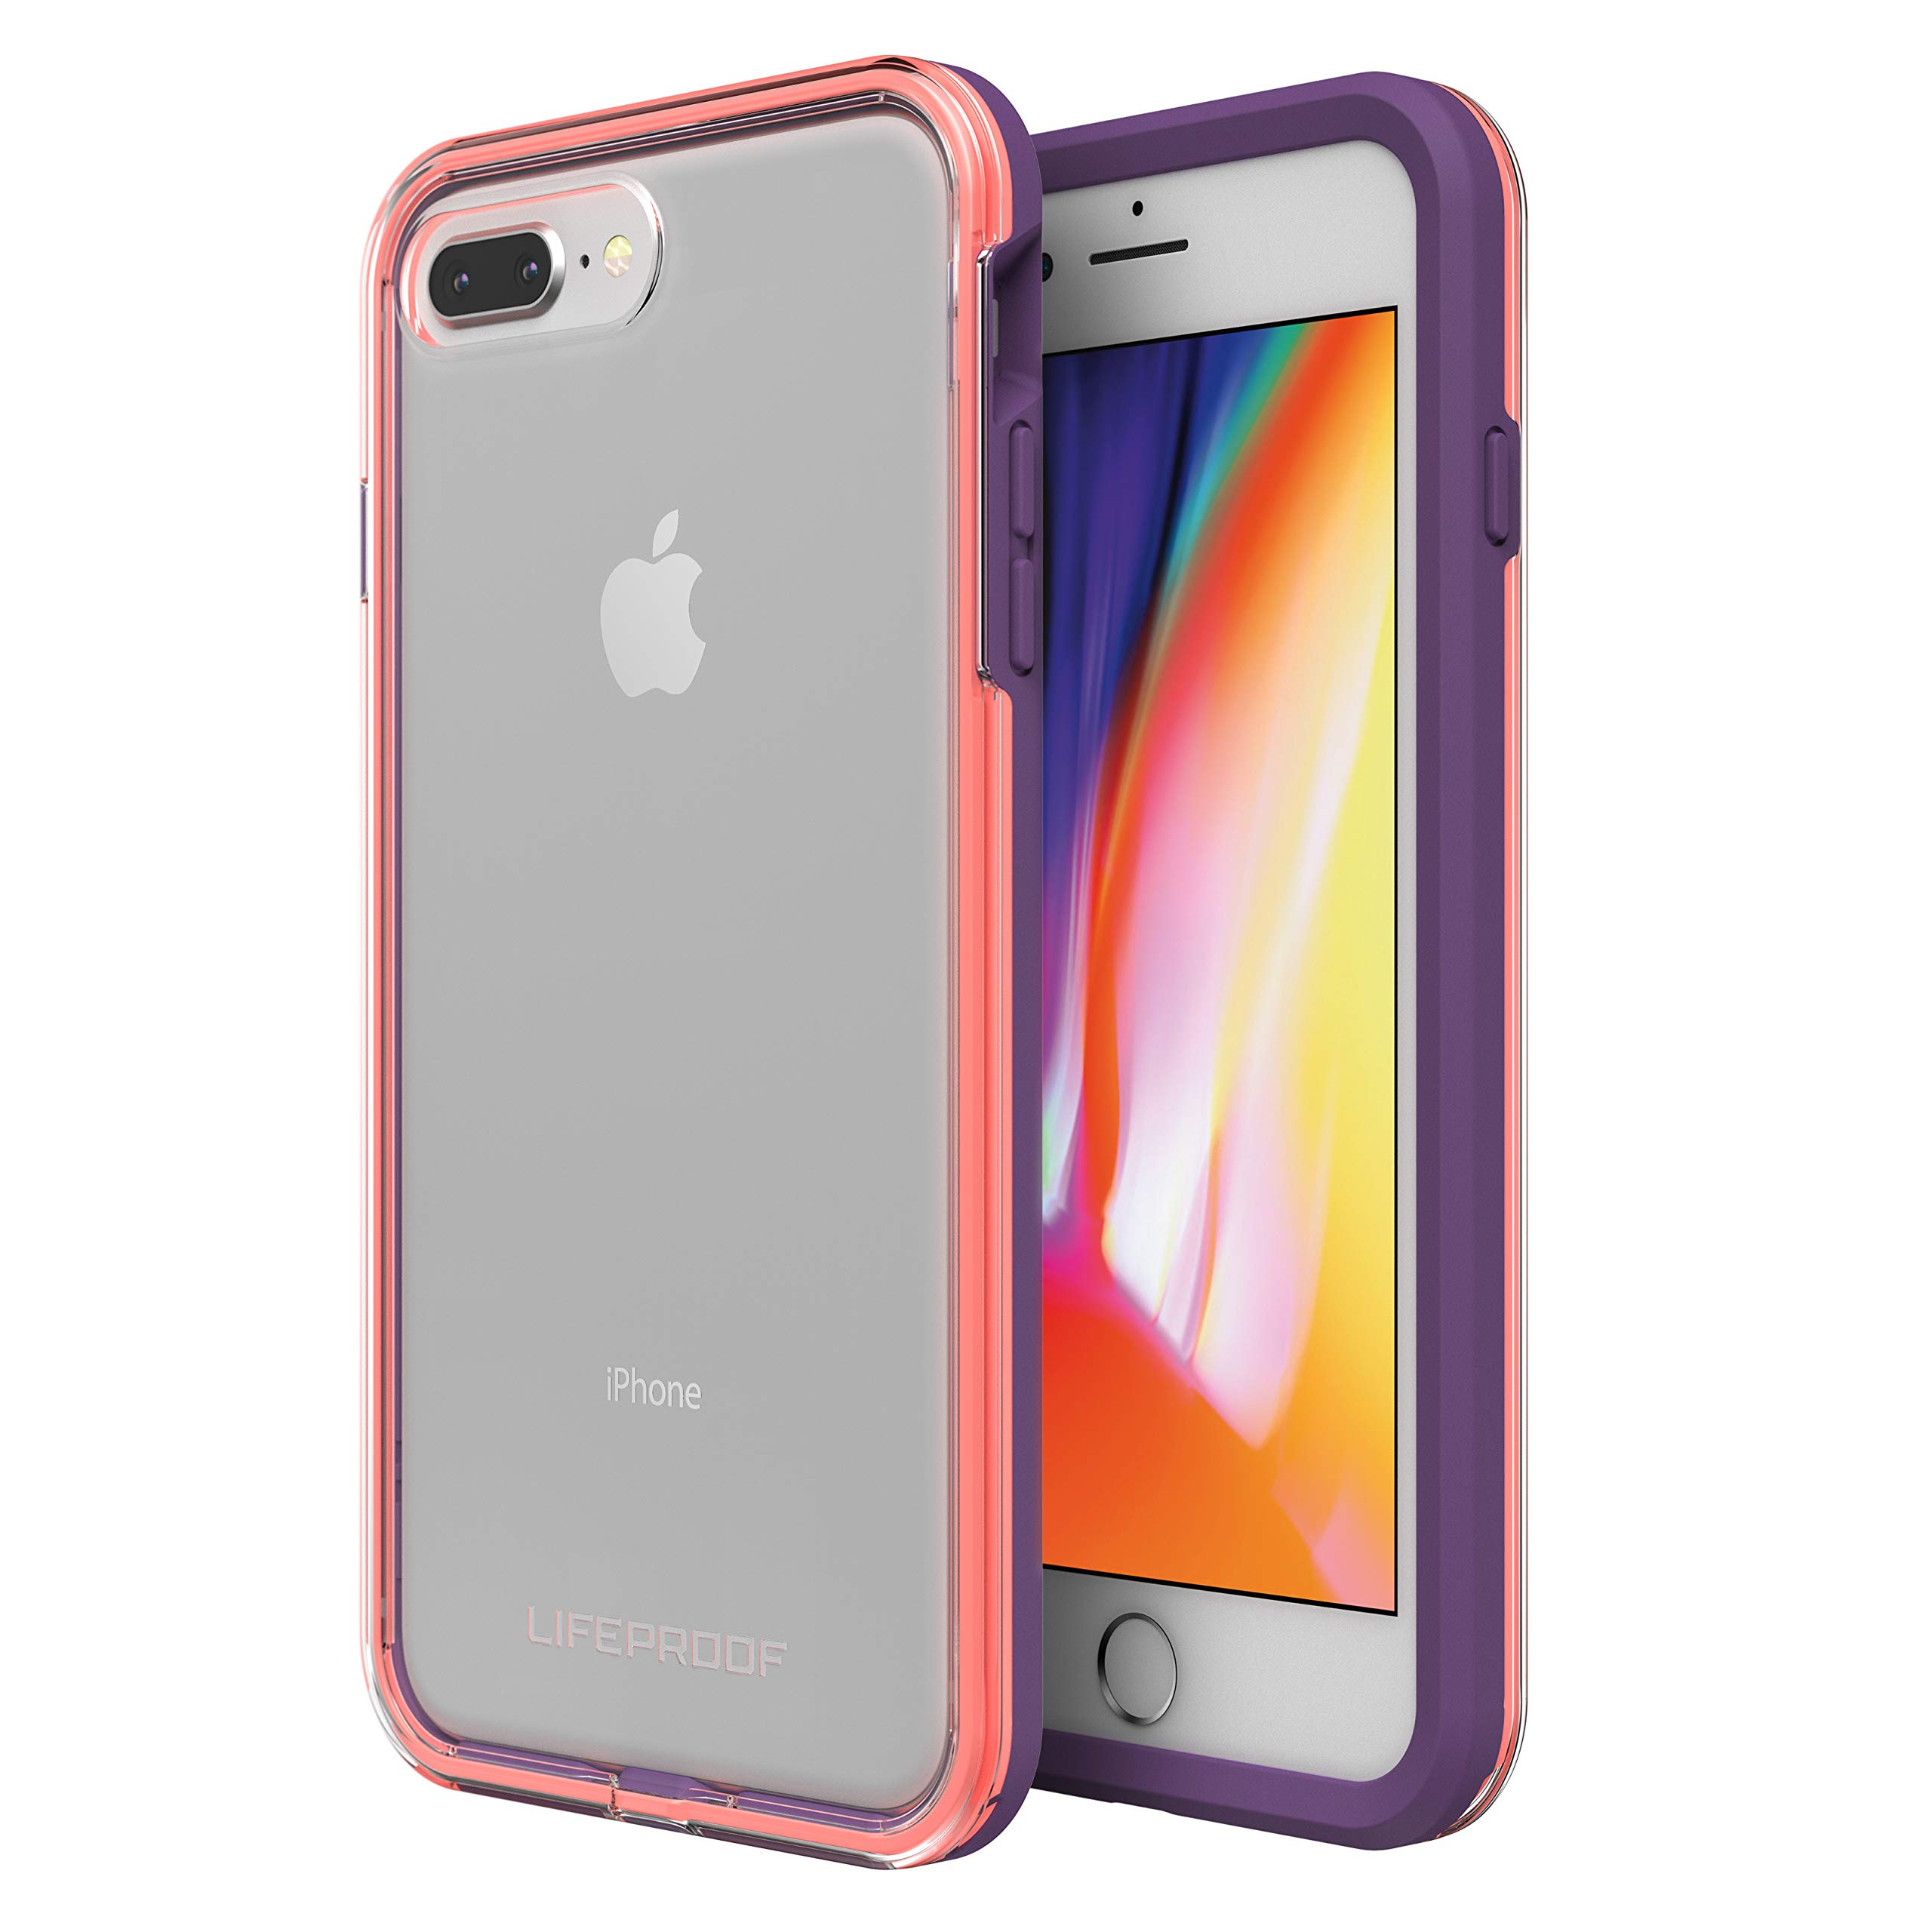 Lifeproof SLAM Series Case for iPhone 8 Plus & 7 Plus (ONLY) - Retail Packaging - Free Flow (Clear/Fusion Coral/Royal Lilac)